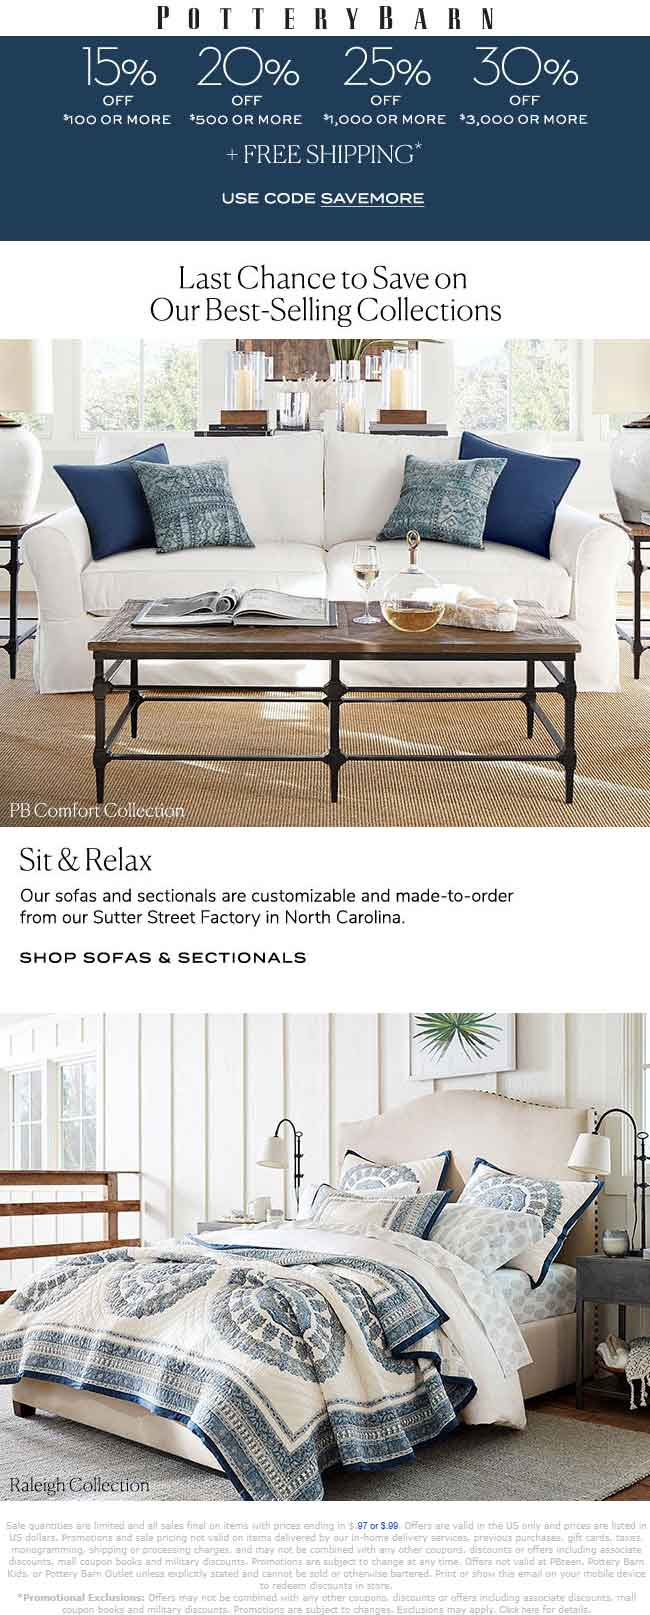 PotteryBarn.com Promo Coupon 15-20% off $100+ at Pottery Barn, or online via promo code SAVEMORE